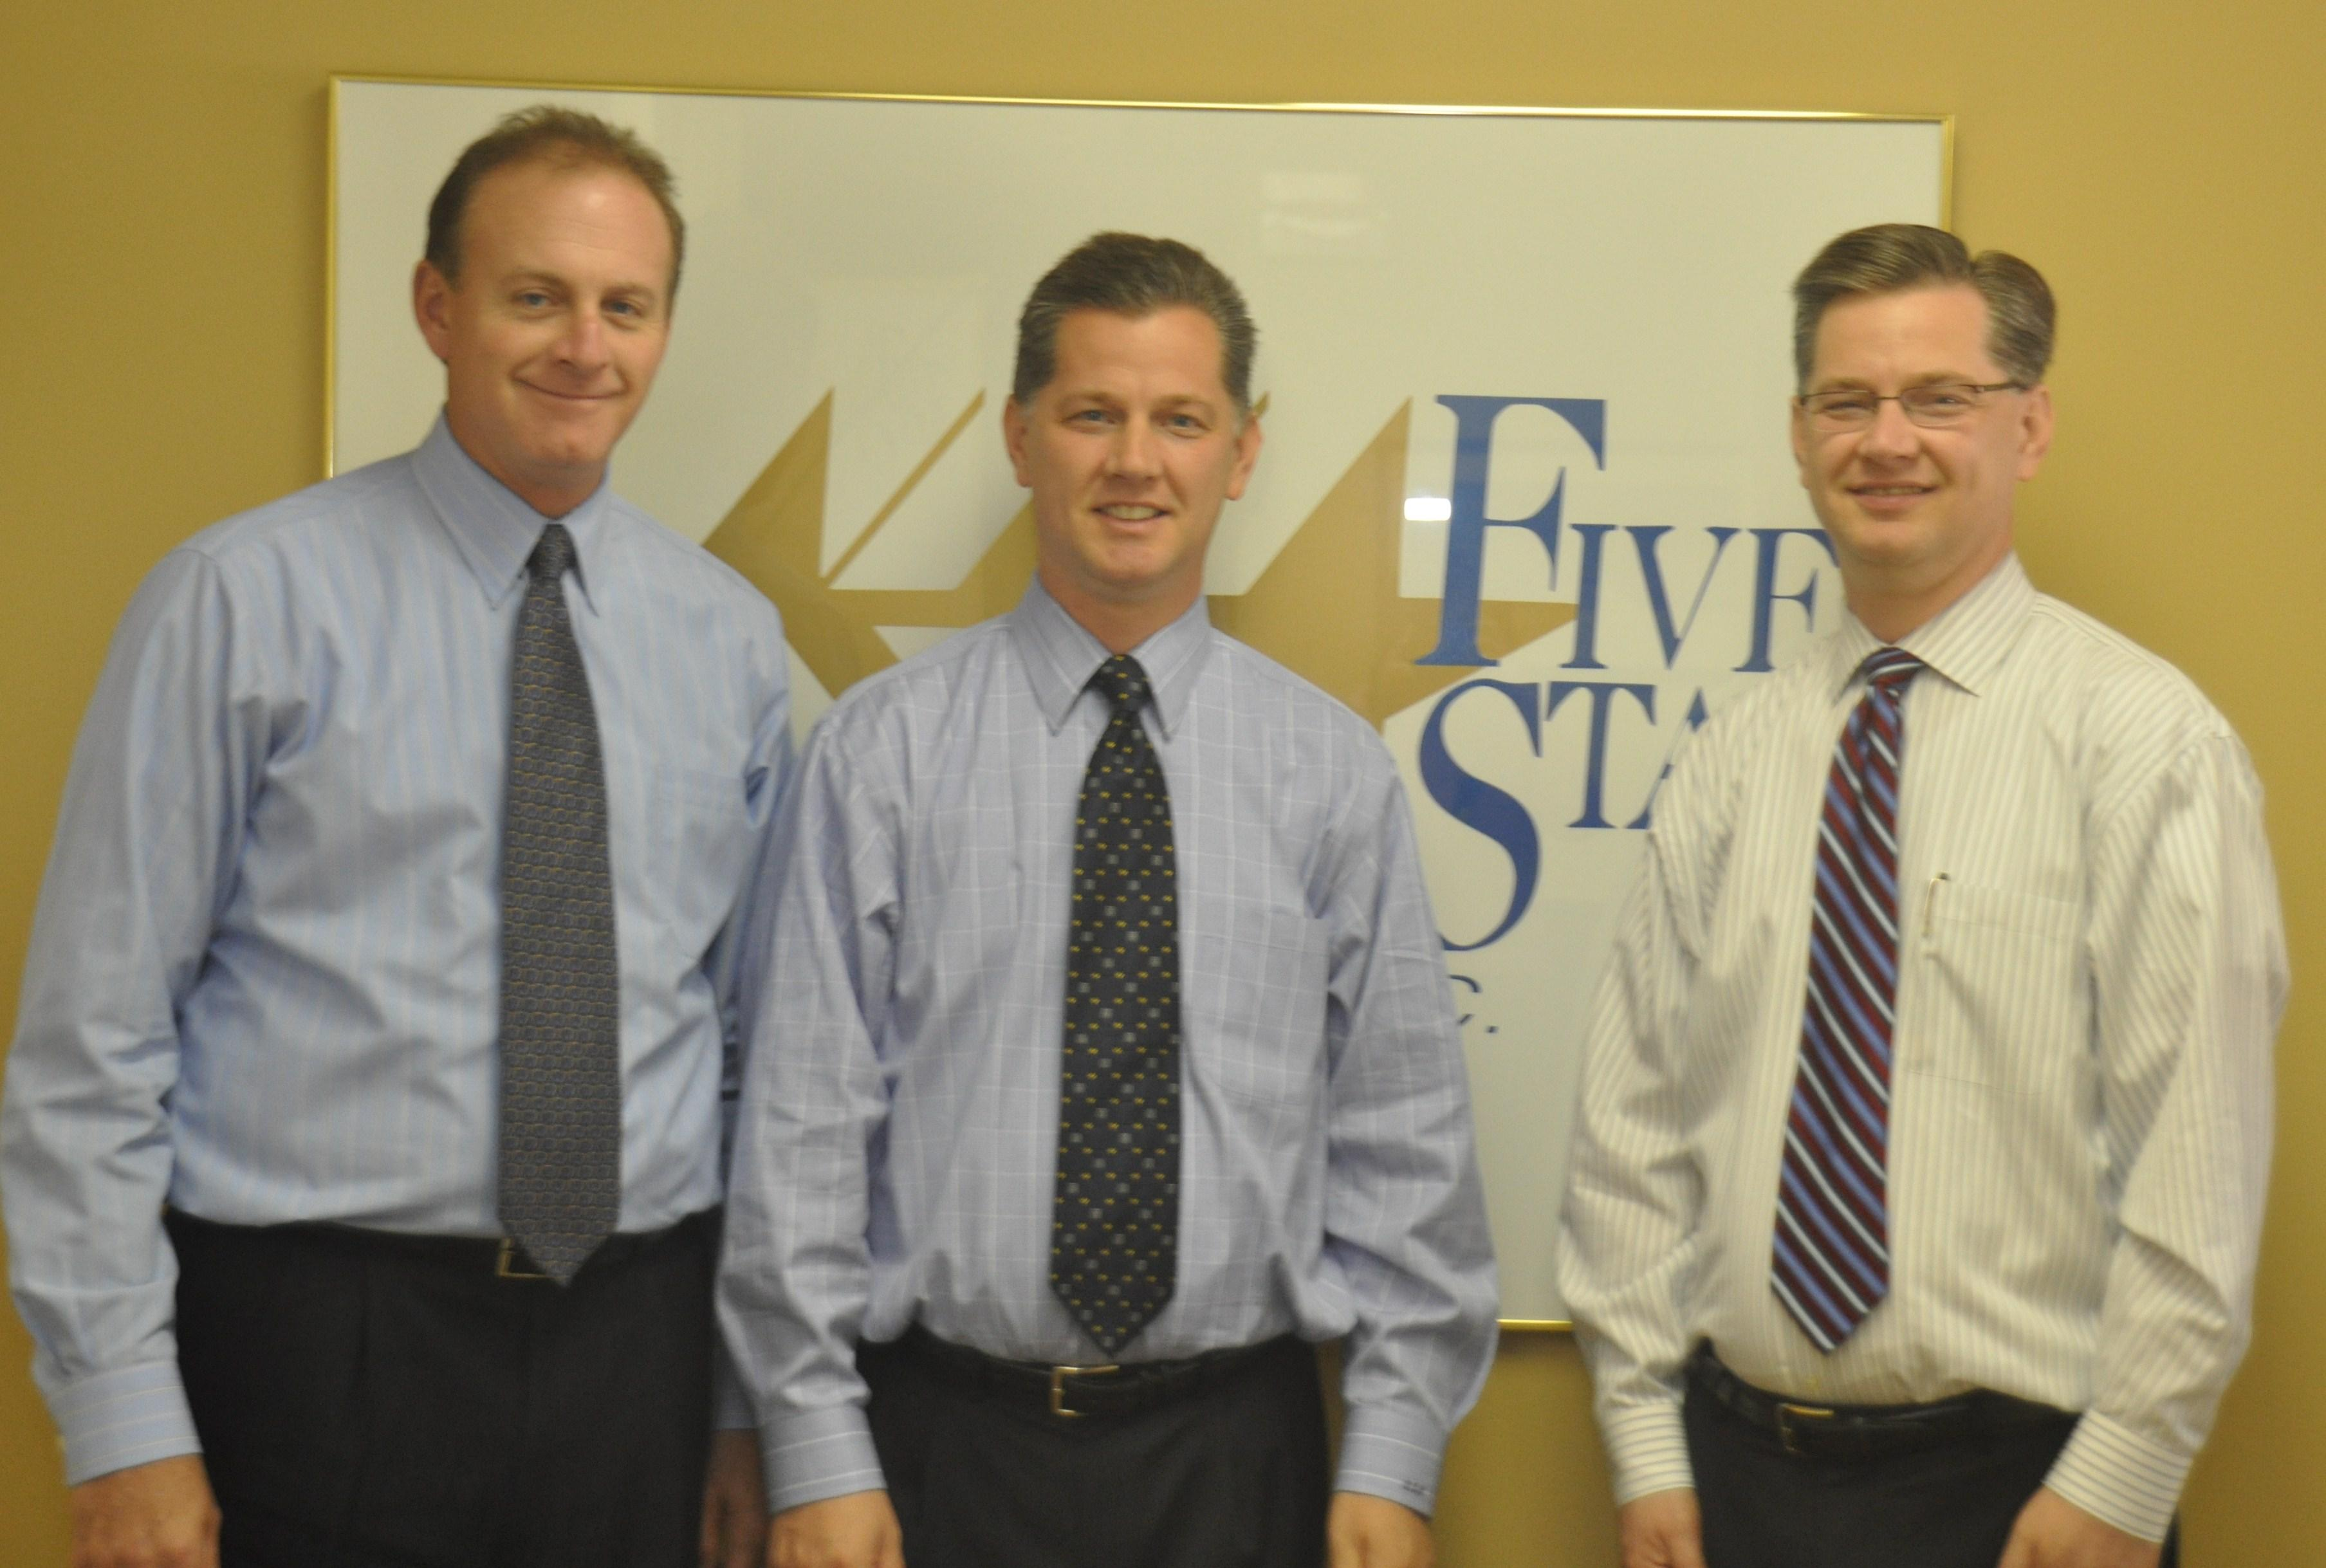 The proud owners of Five Star Home Foods, Bob Kane (VP Sales), Brian Holtzinger (VP Marketing) & Bruce Holtzinger (VP Finance). Photo Credit – Times Herald